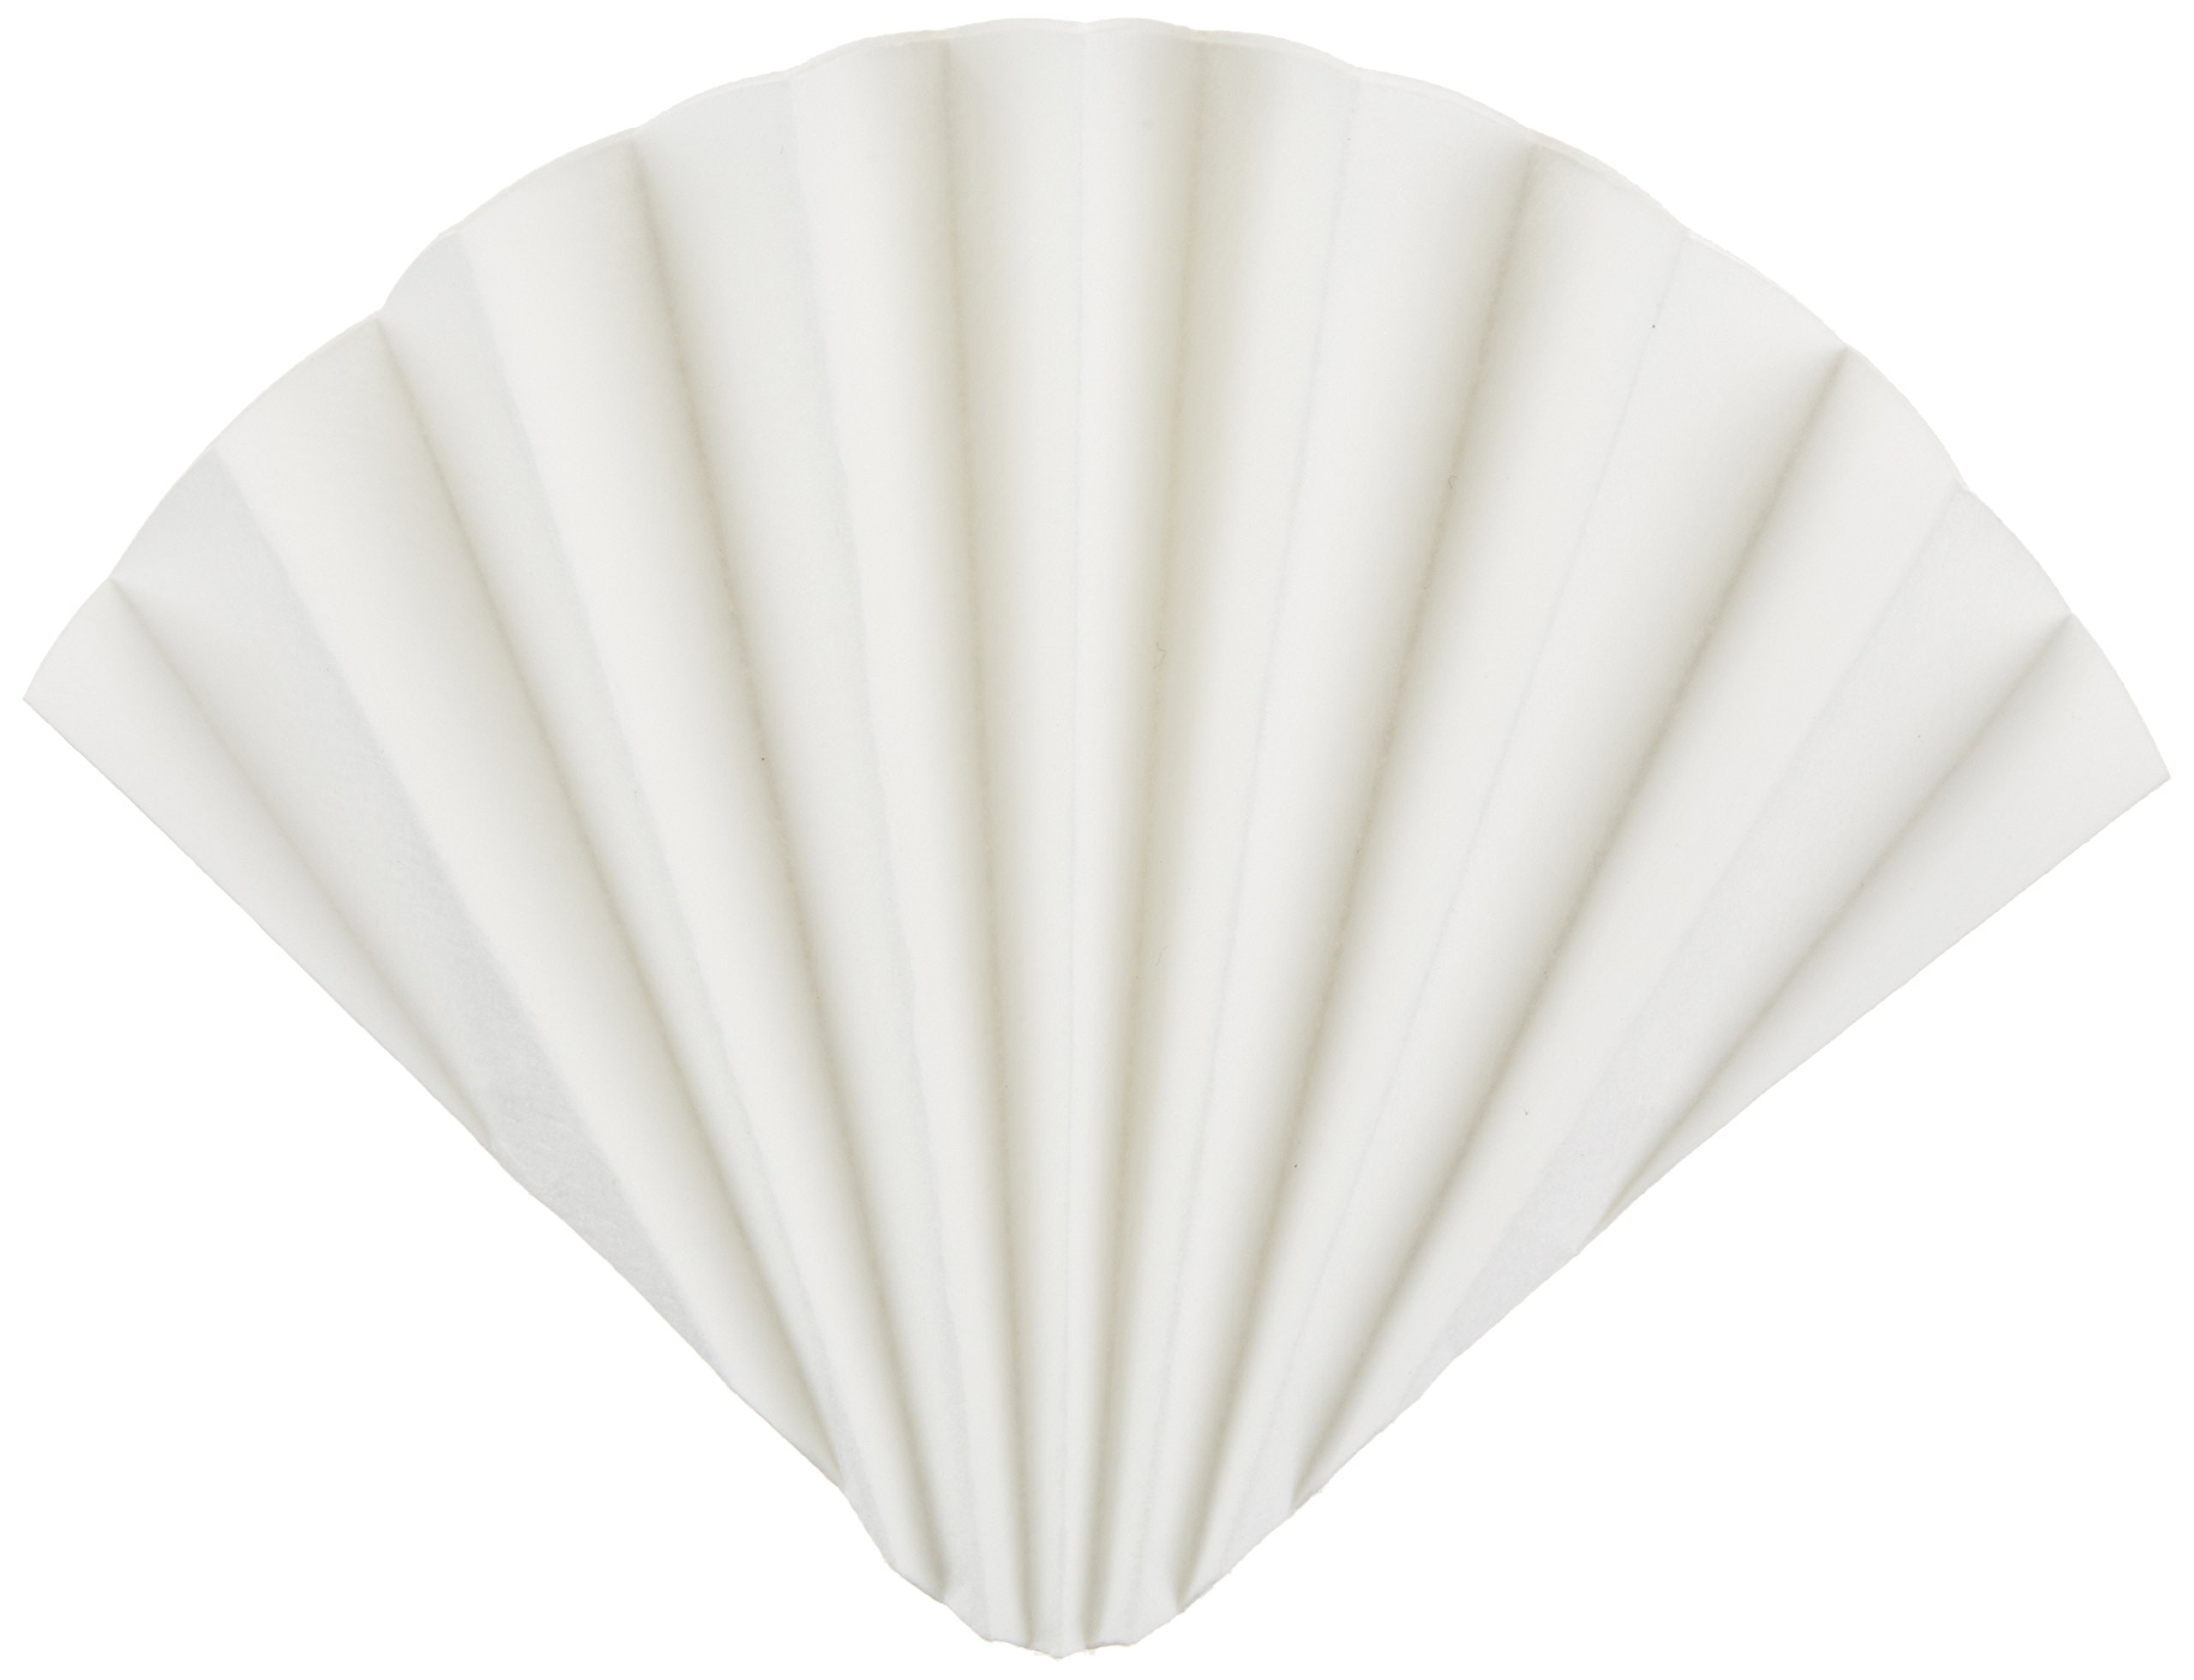 GE Whatman 10313947 Prepleated Cellulose Qualitative Filter Paper for Determination of Malt and Wort in Beer, Grade 2555 1/2, Folded, 12µm Pore Size, 185mm Diameter (Pack of 100)